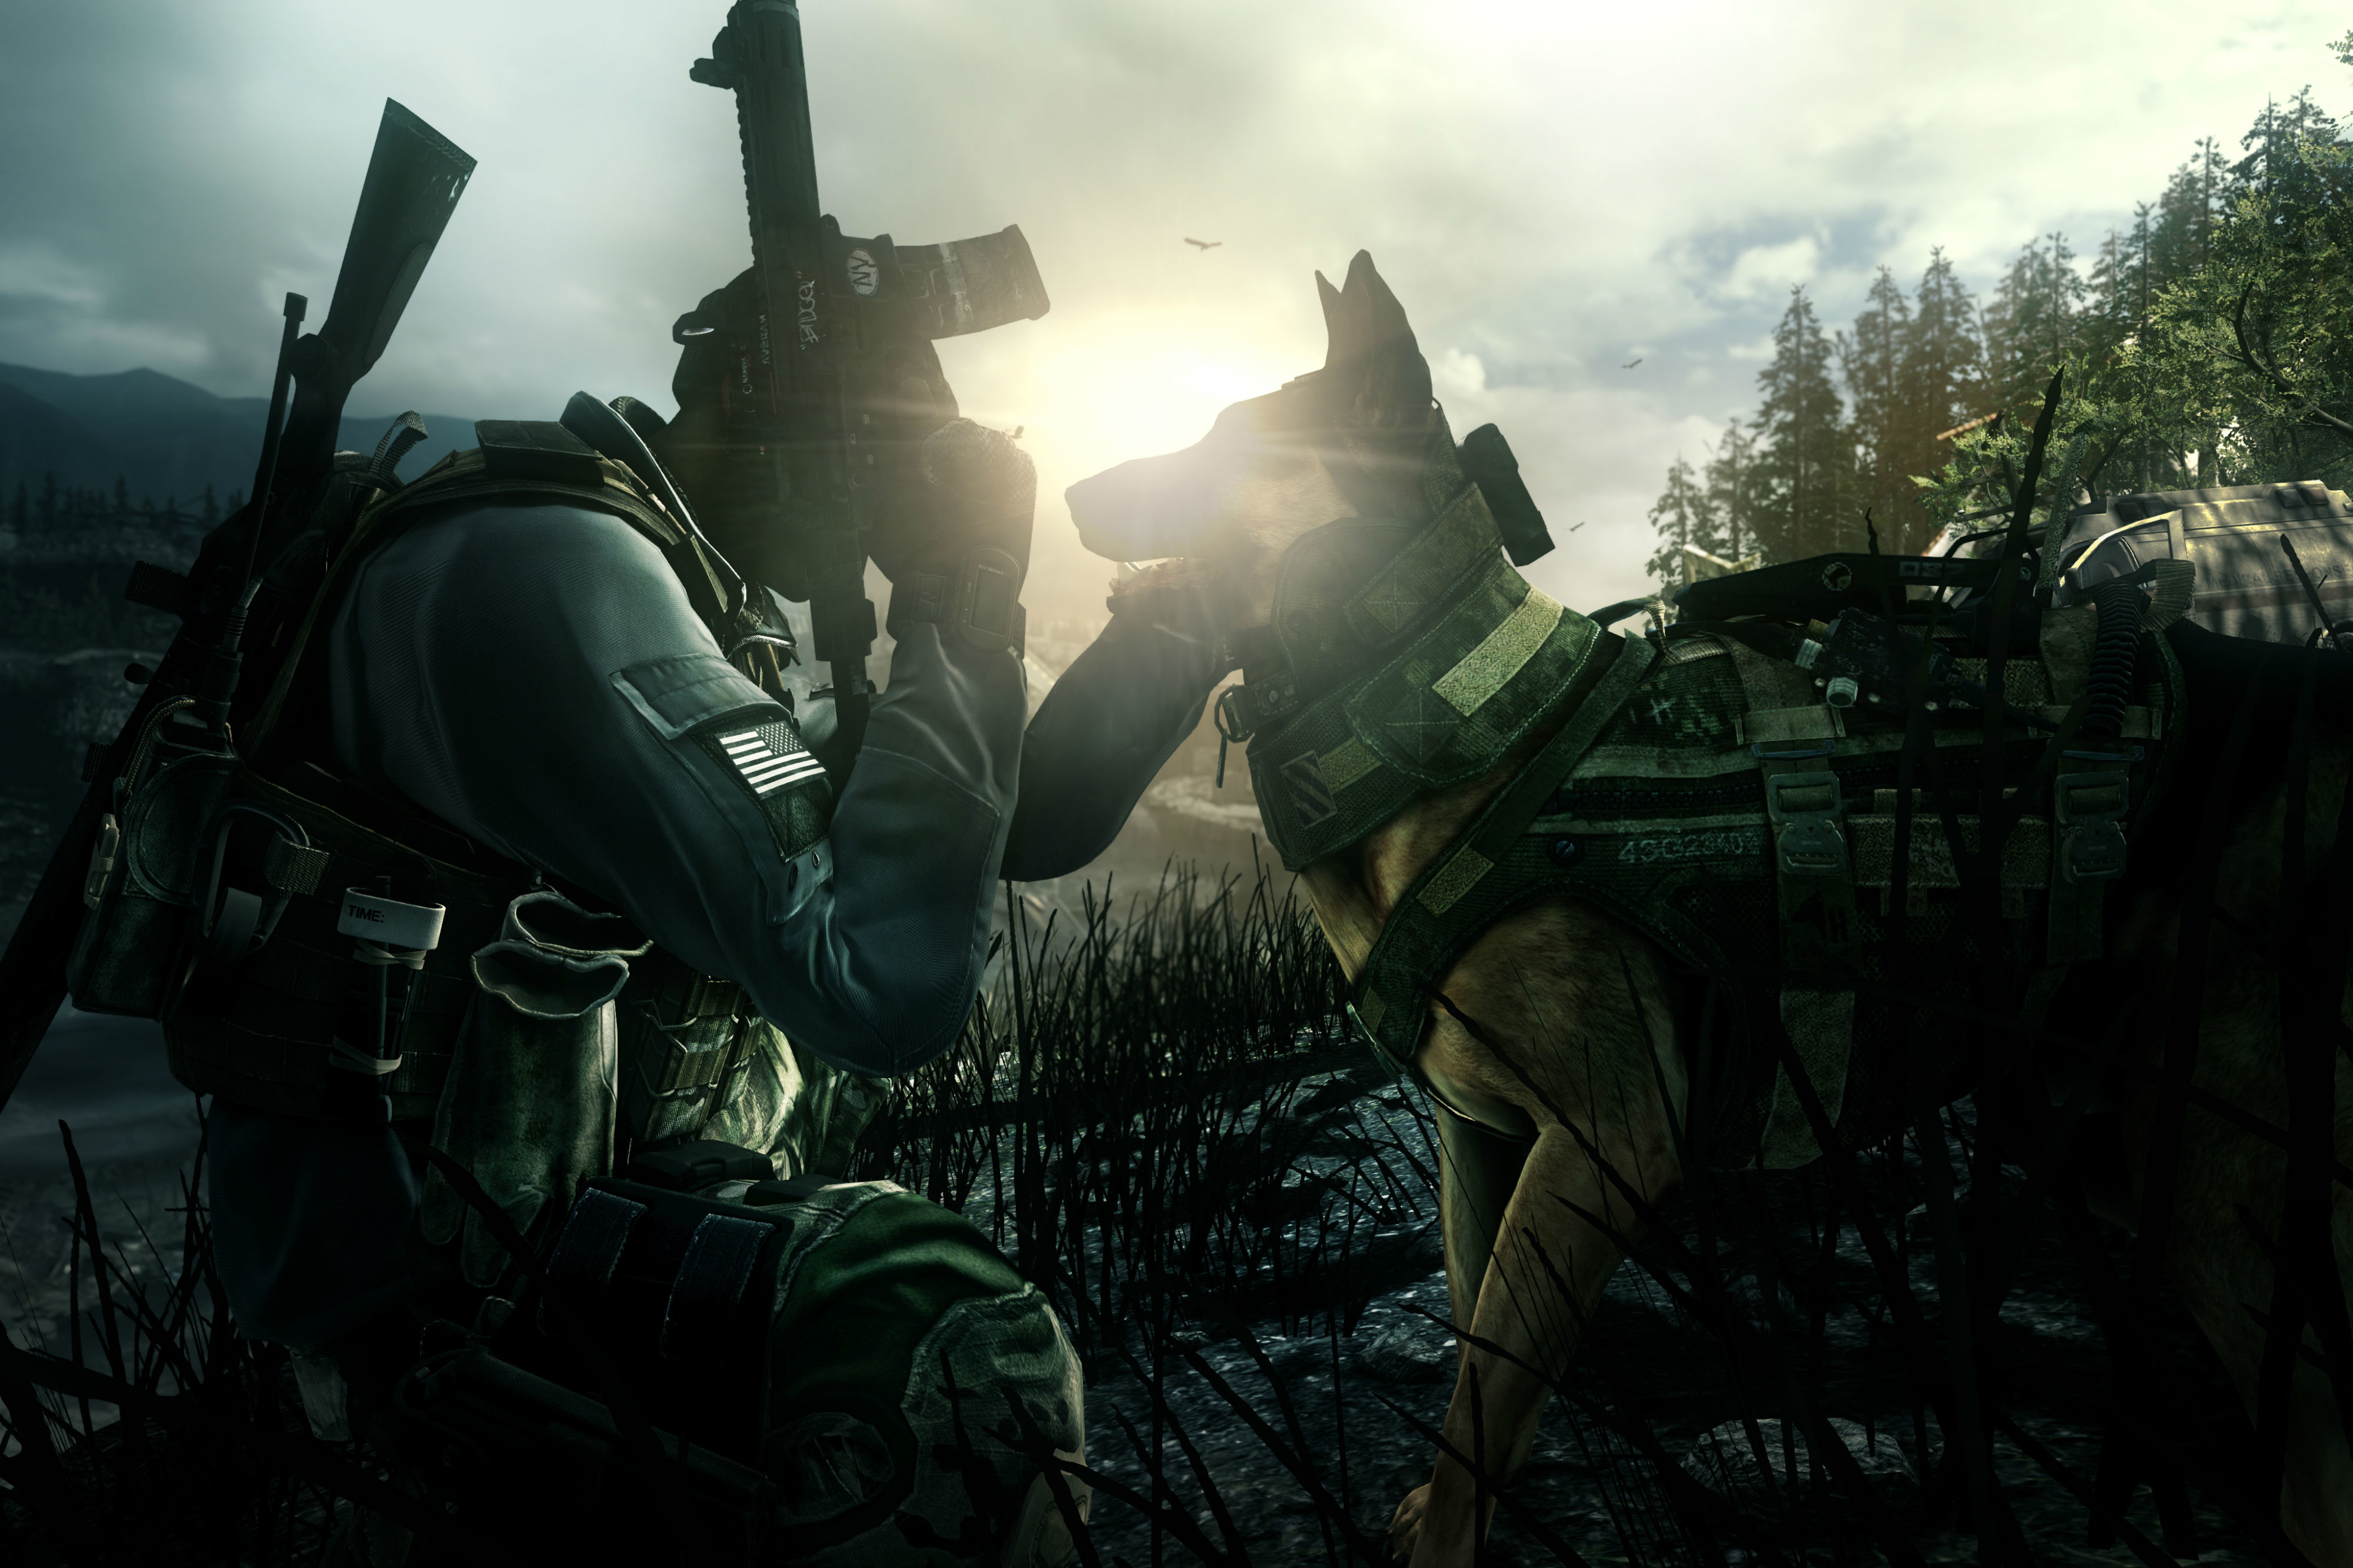 Brandon Routh in Call of Duty: Ghosts (2013)